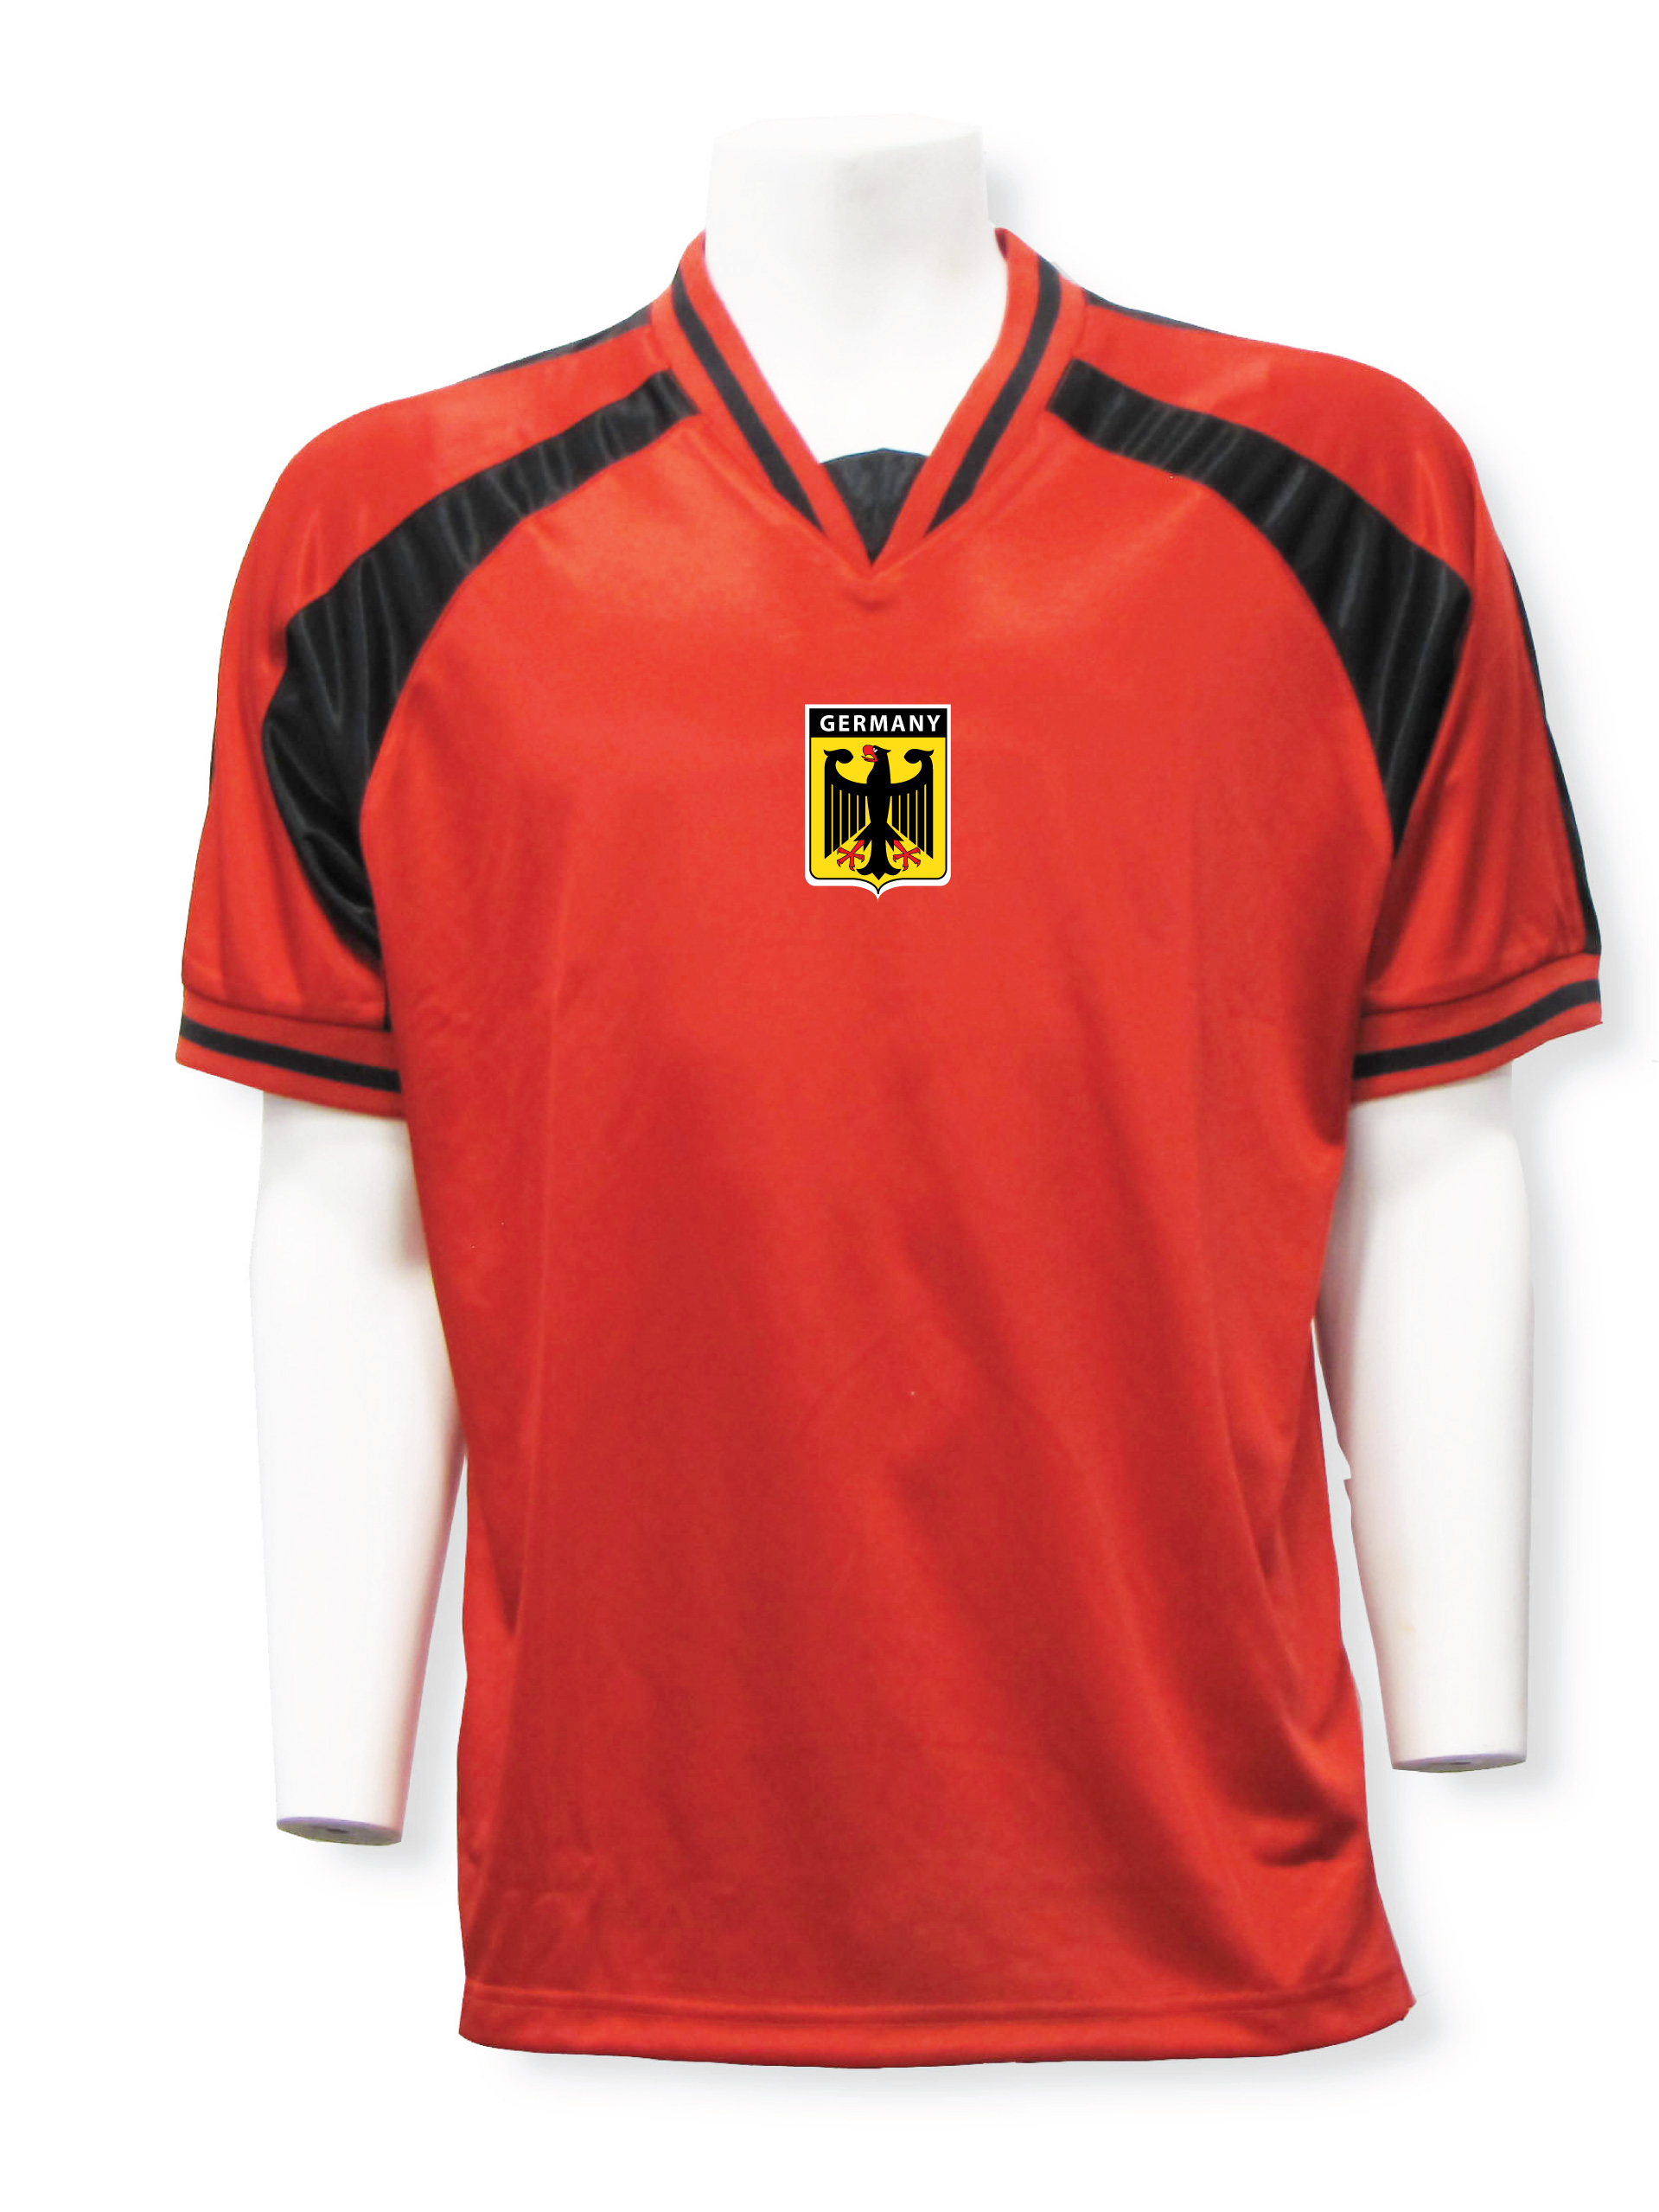 Germany soccer jersey in red/black Spitfire